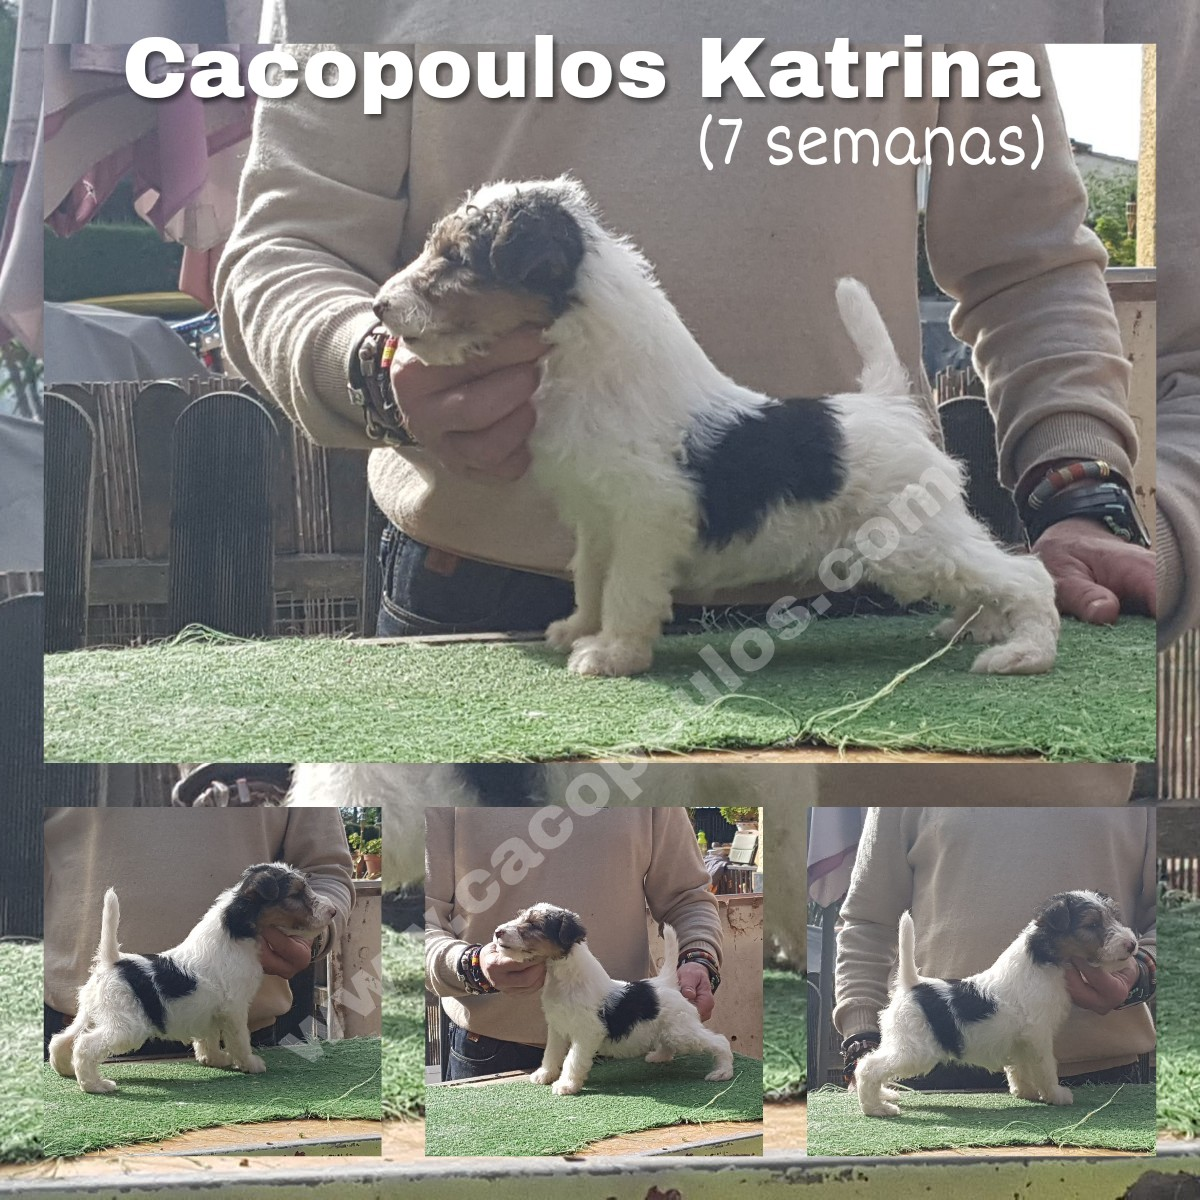 wire, fox, terrier, cacopoulos, katrina, foxterrier, peloduro, cachorros, puppies